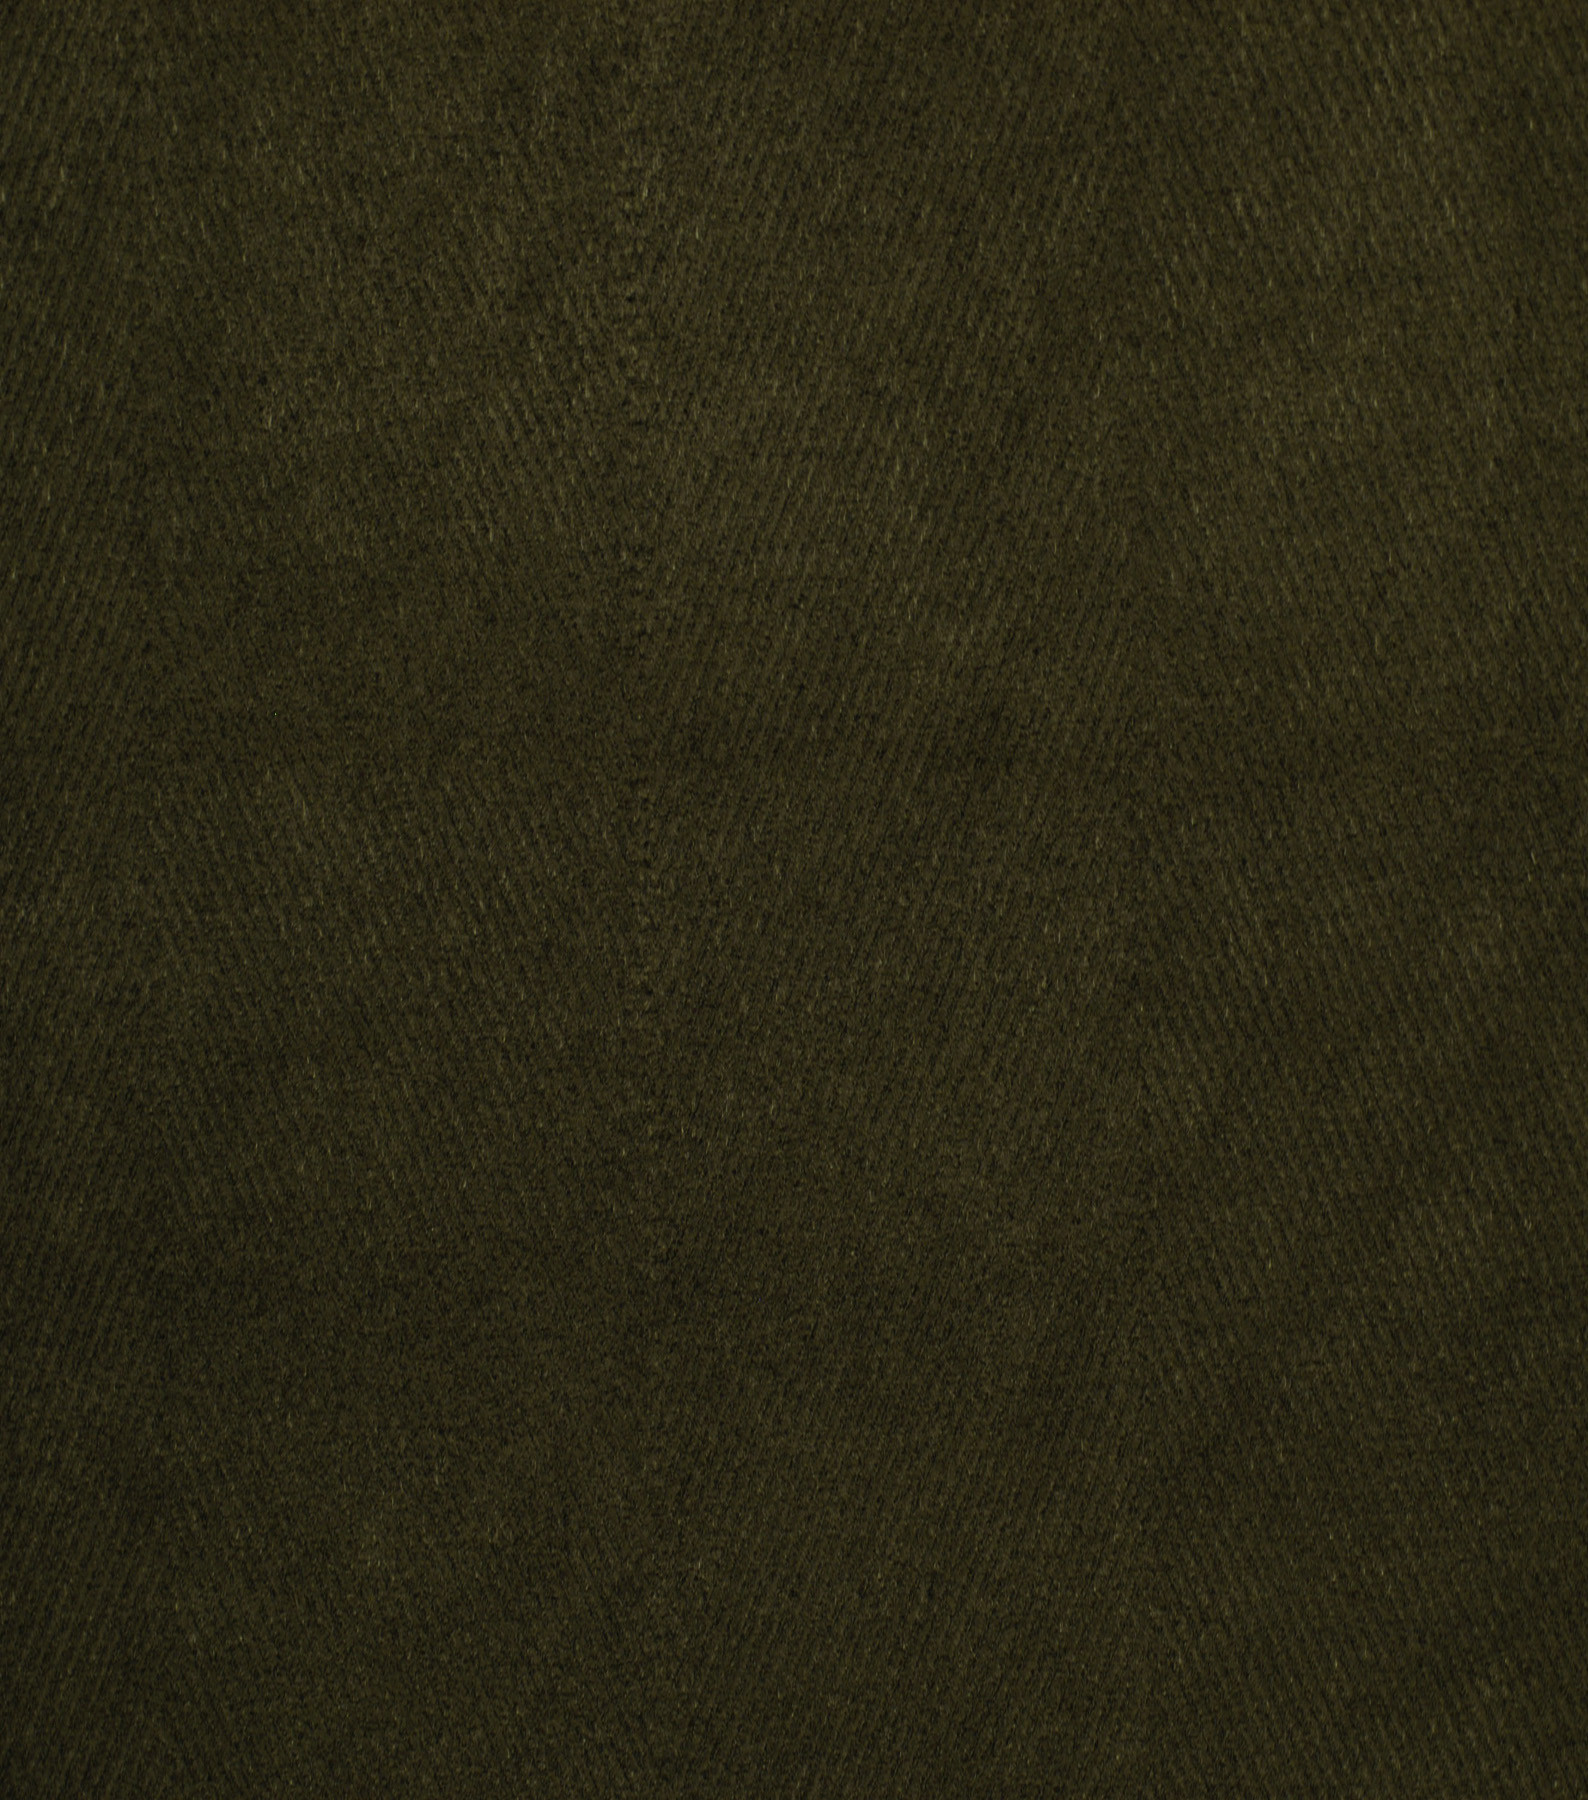 Home Decor 8\u0022x8\u0022 Fabric Swatch-Solid Fabric Signature Series Woodburn Basil